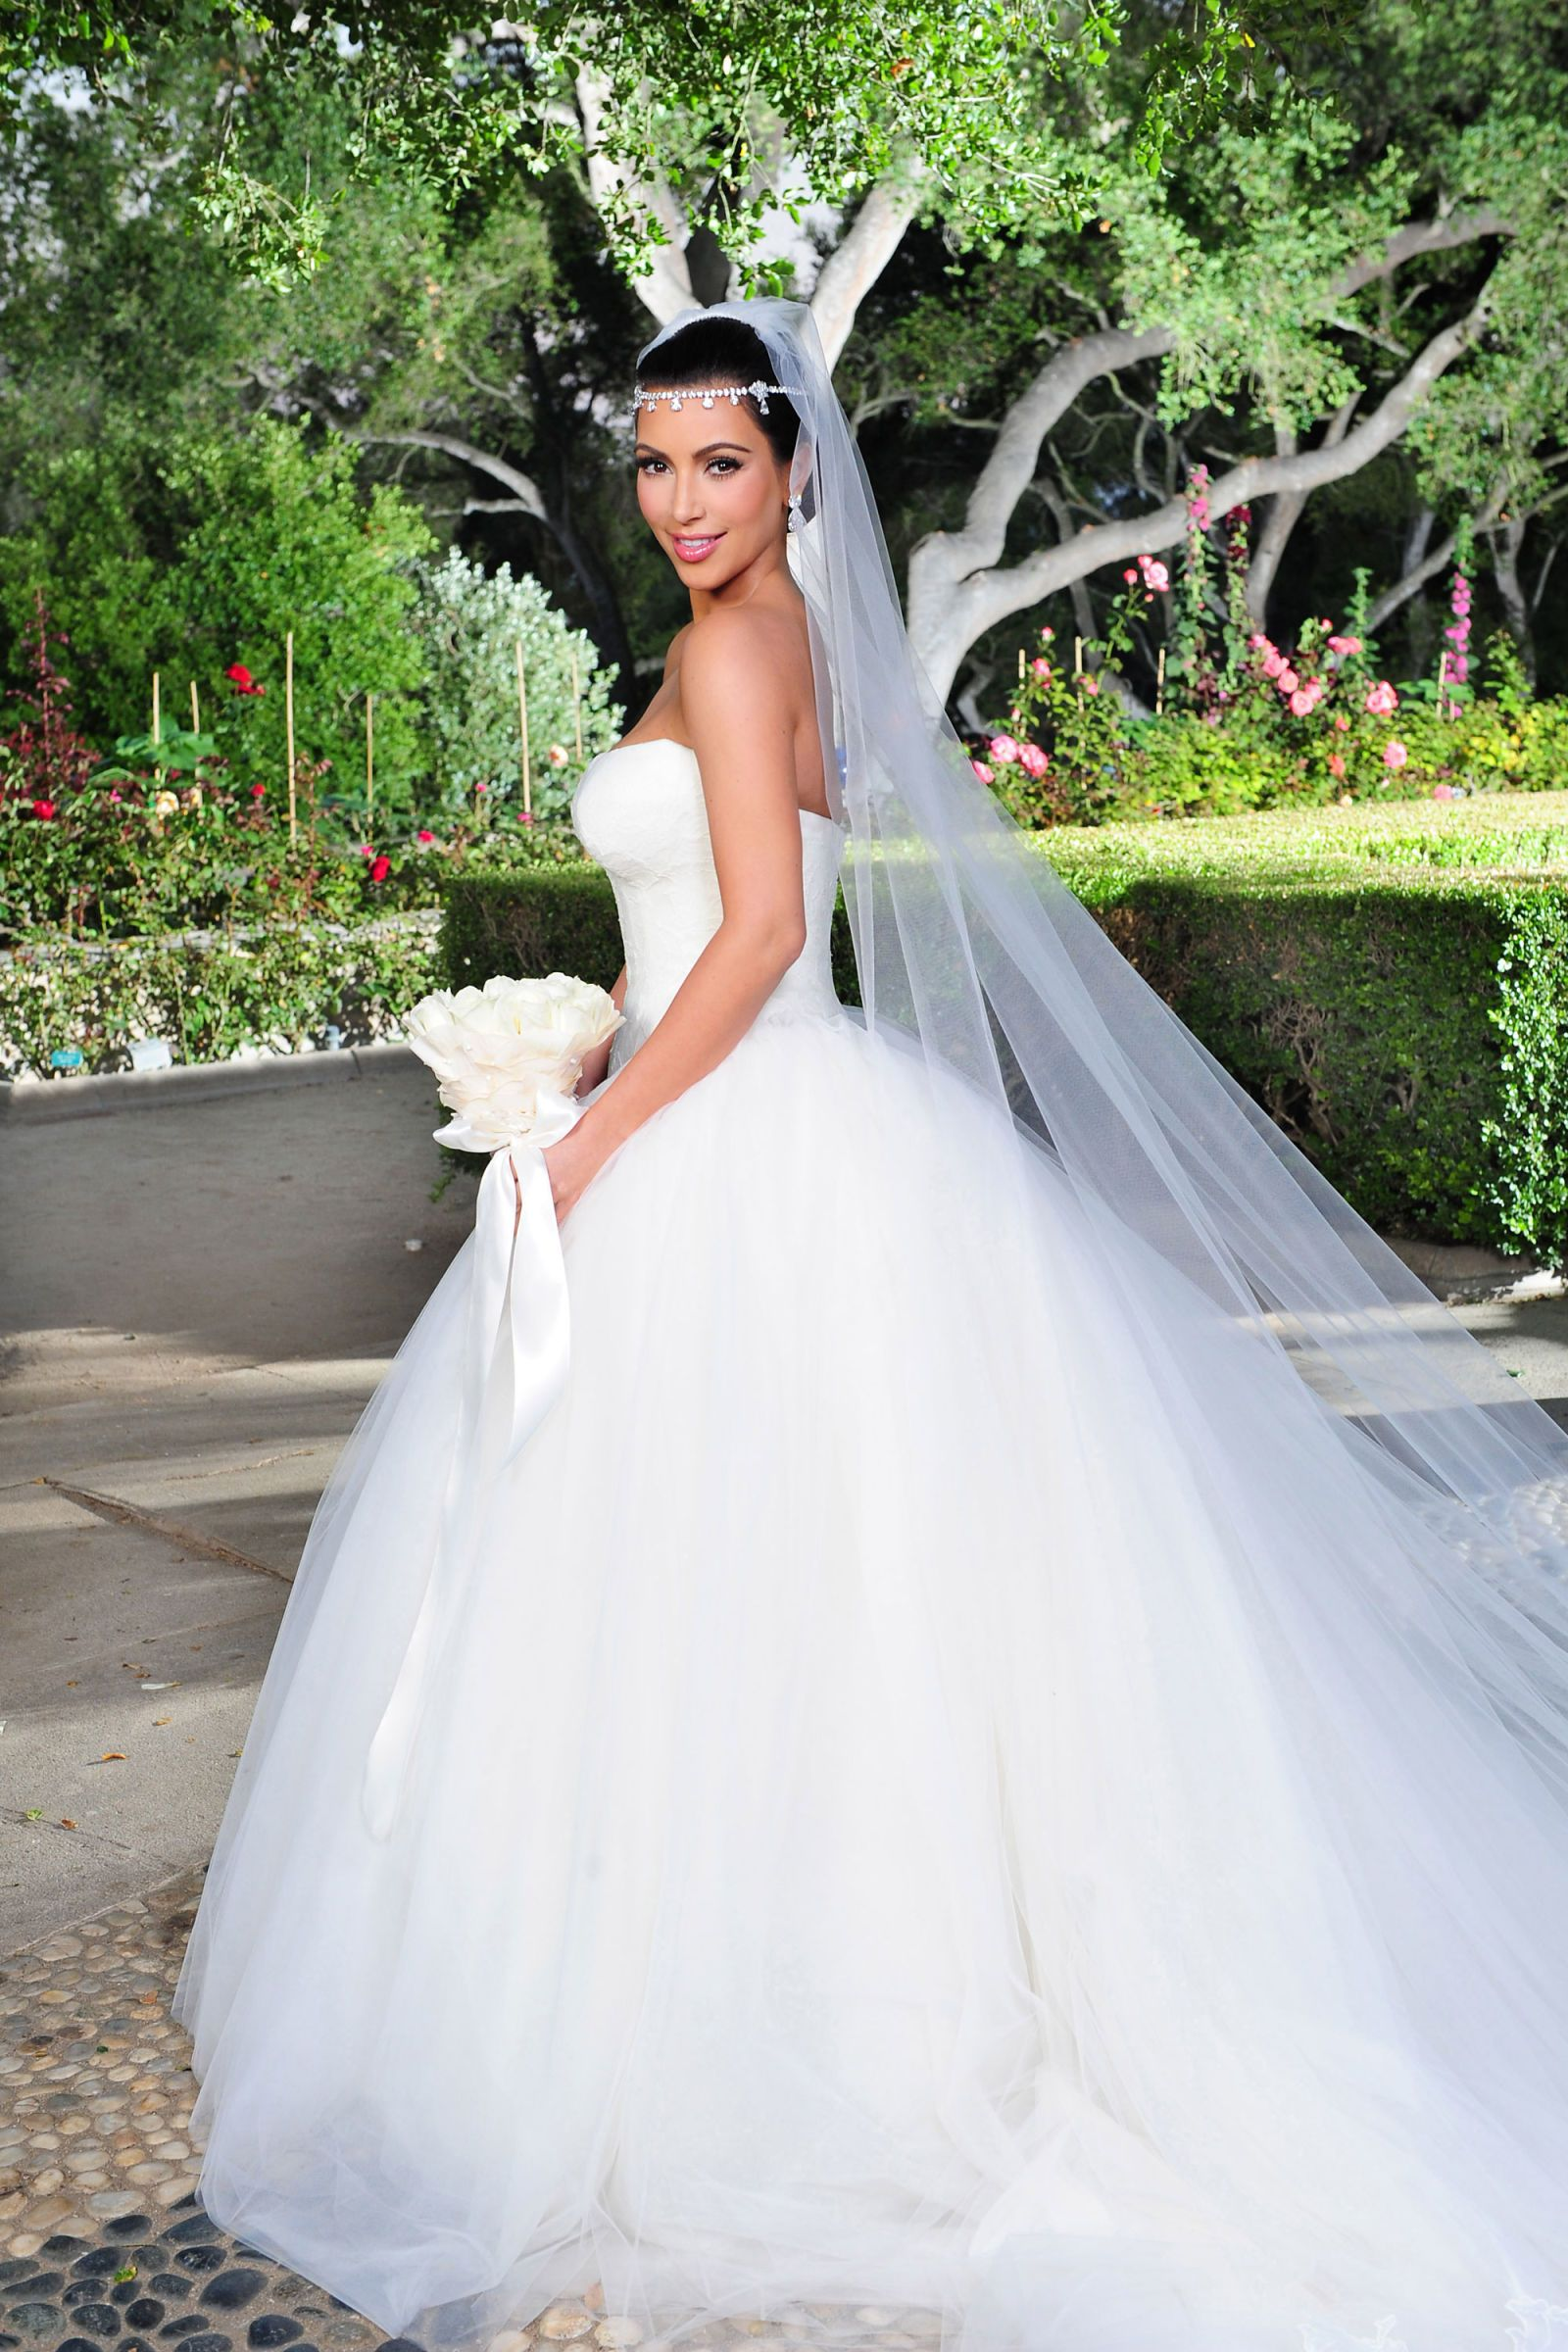 9 Of The Most Expensive Celebrity Wedding Dresses Ever Expensive